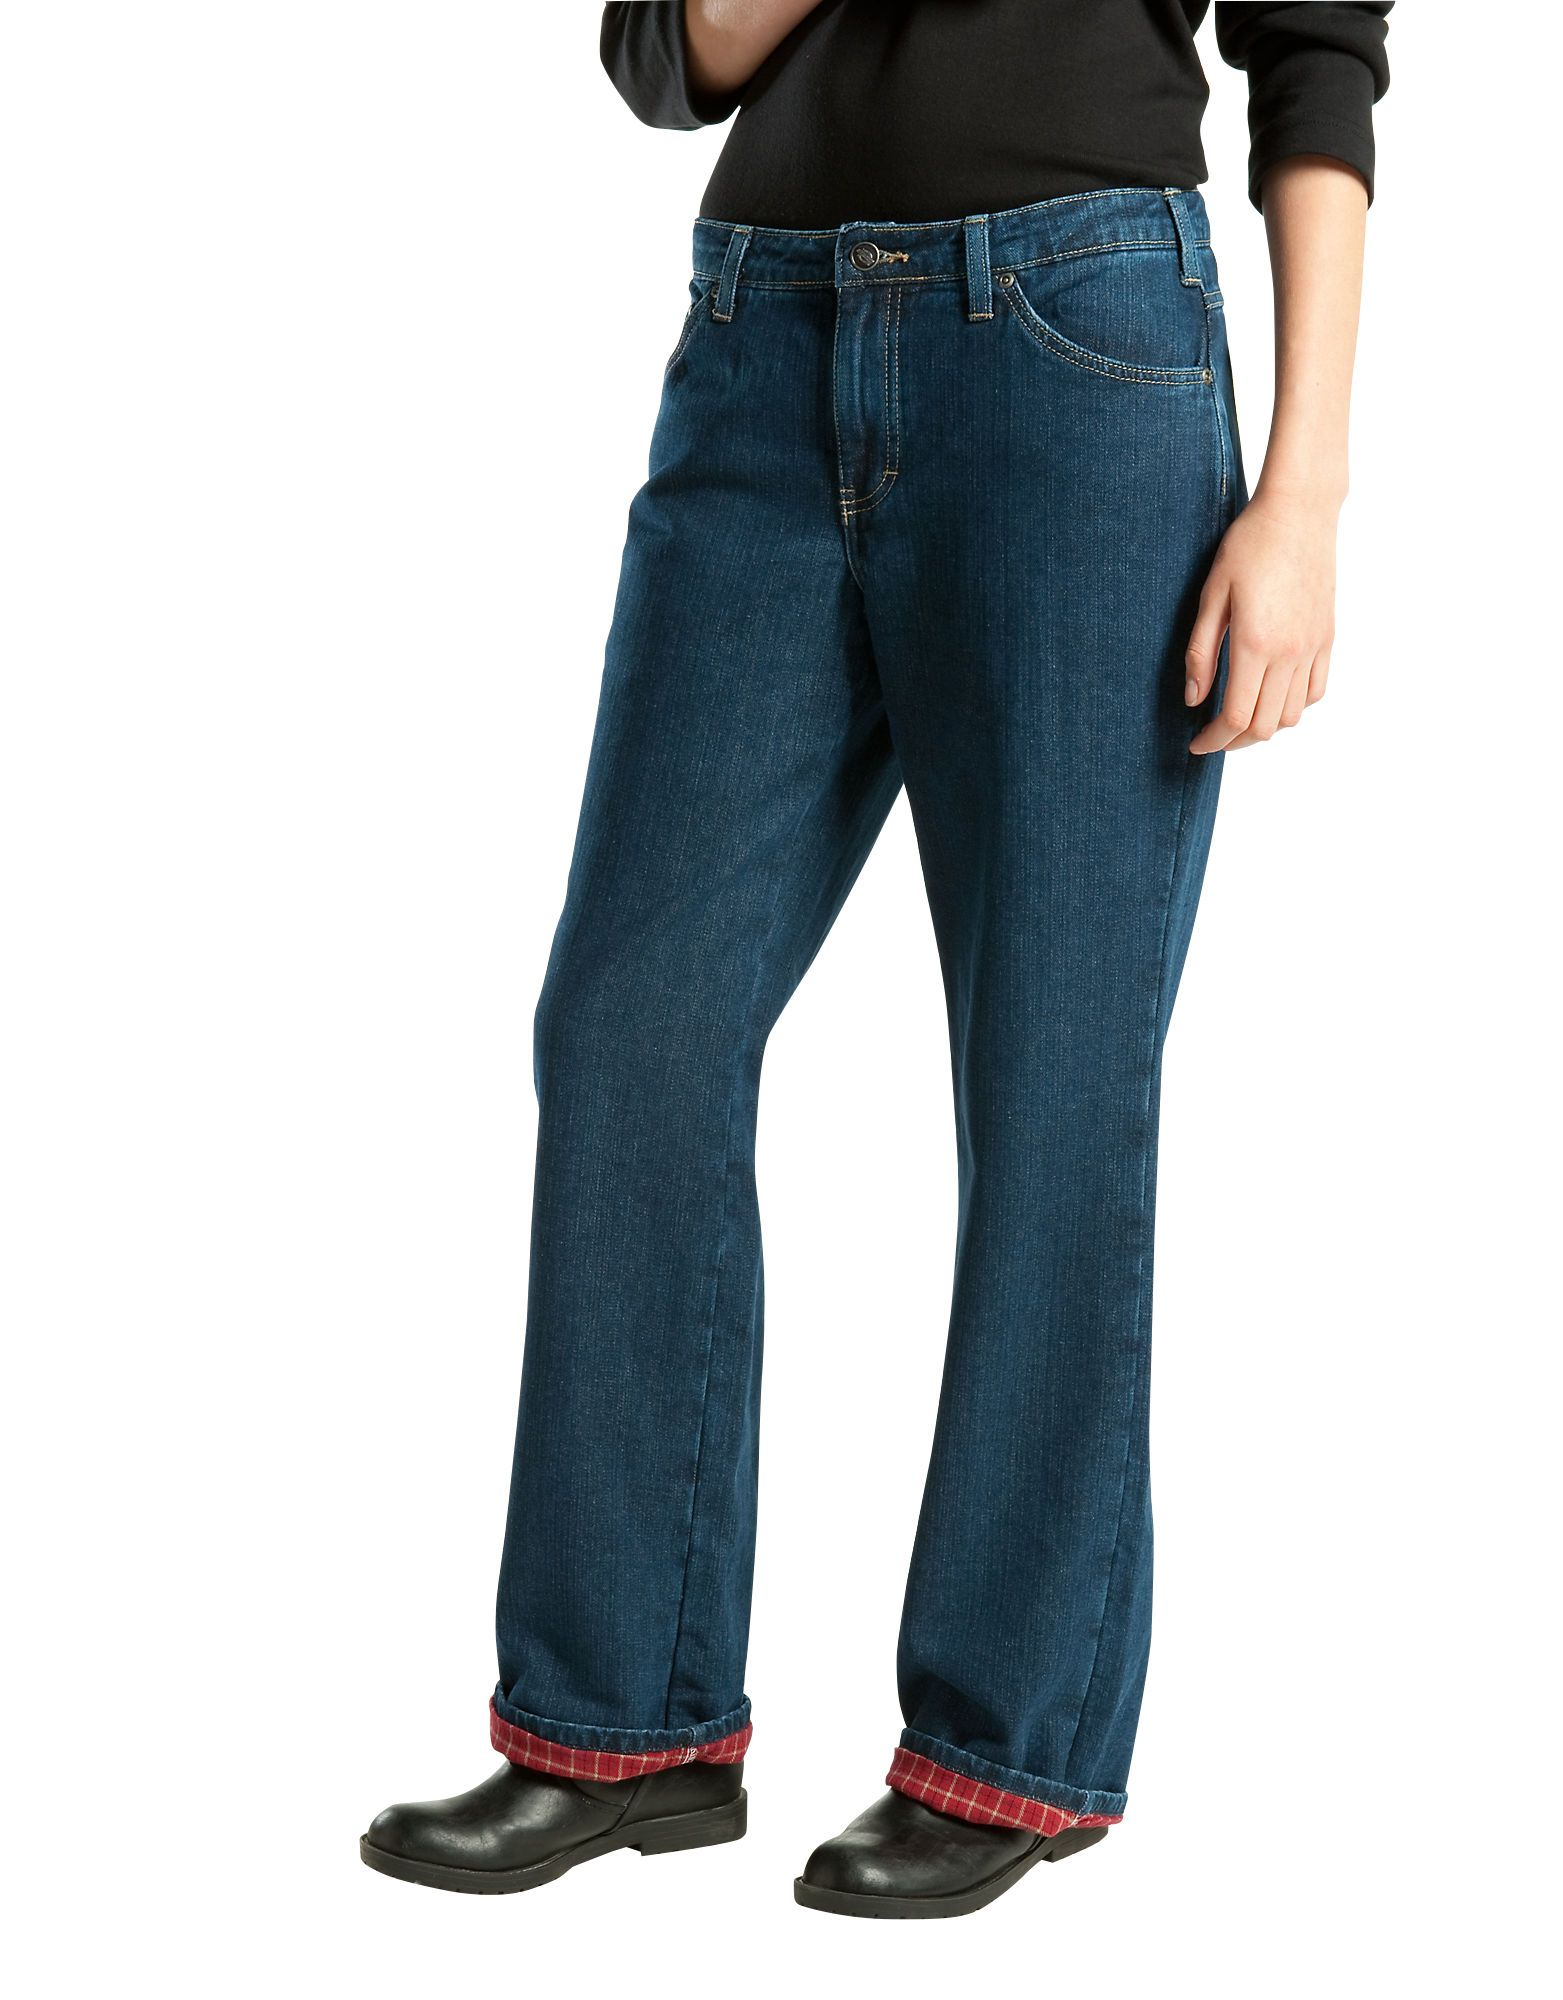 Dickies Women S Relaxed Fit Straight Leg Flannel Lined Denim Jean Fd117 Free shipping on orders of $35+ and save 5% every day with your target redcard. dickies women s relaxed fit straight leg flannel lined denim jean fd117